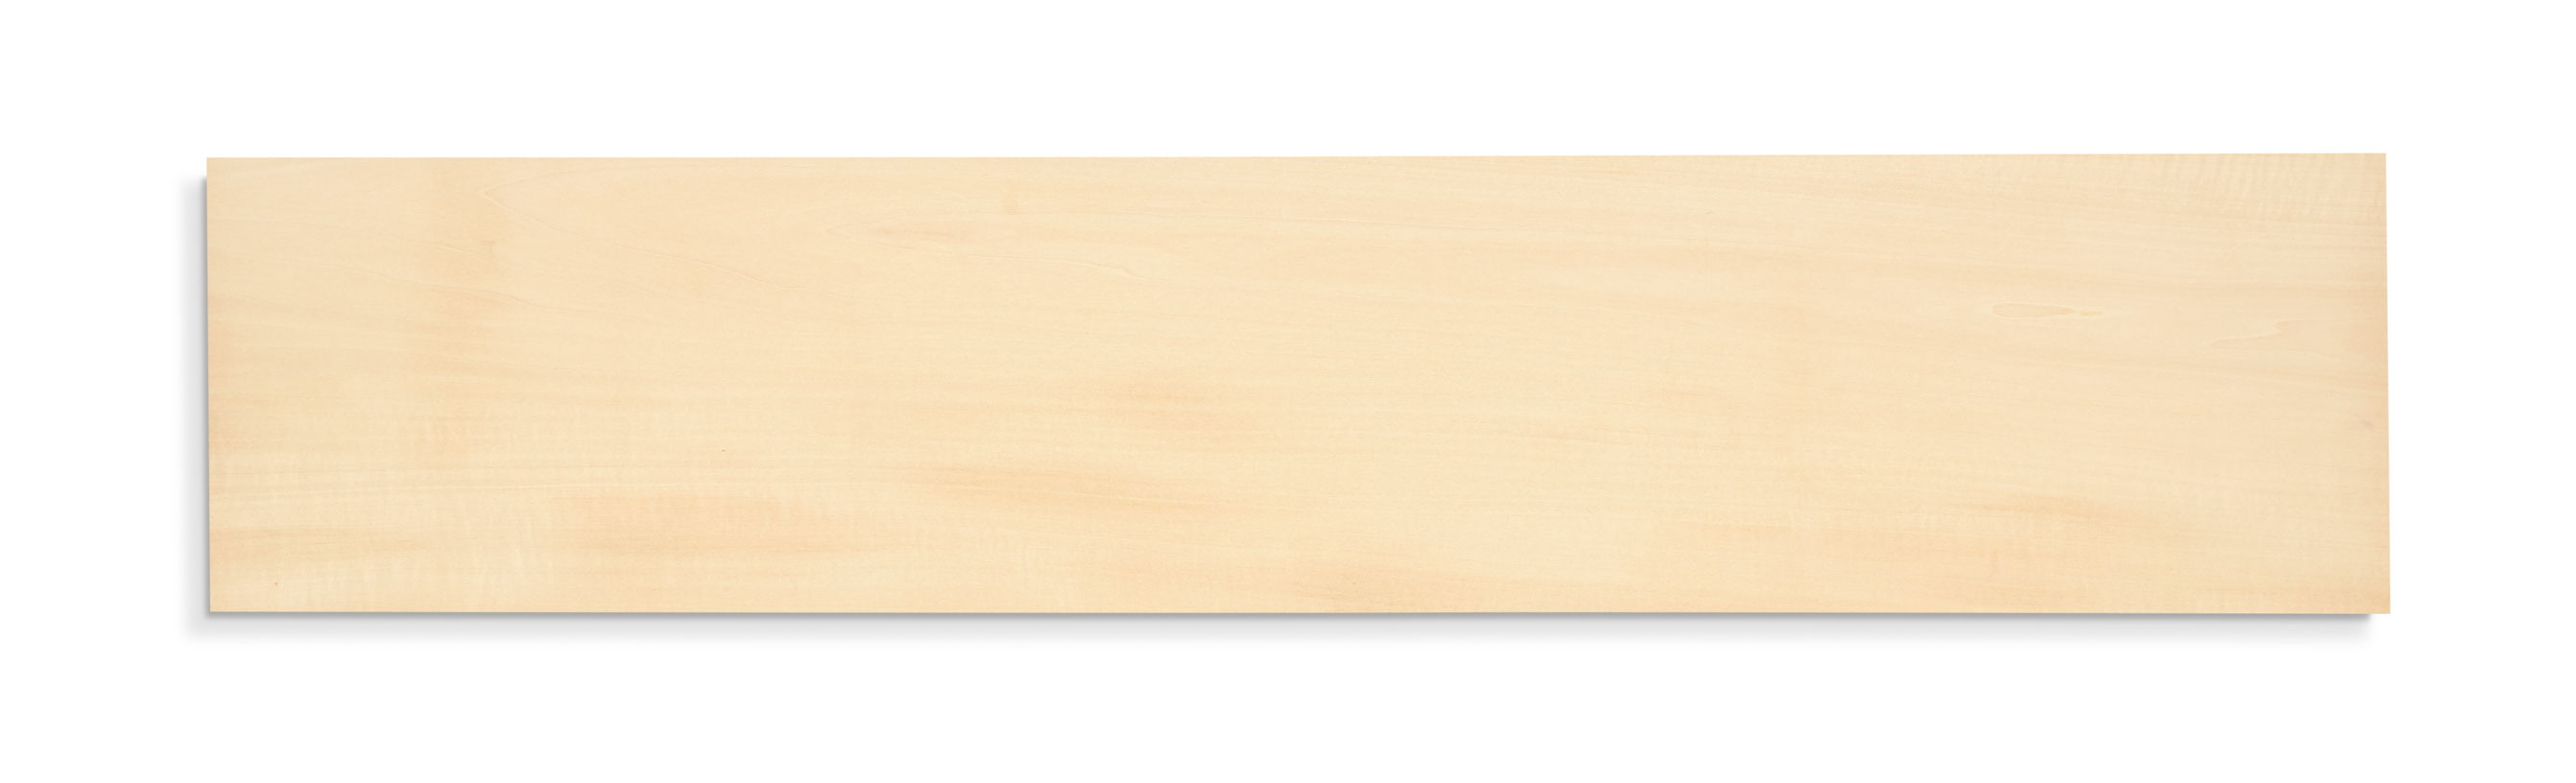 american_basswood_unoiled